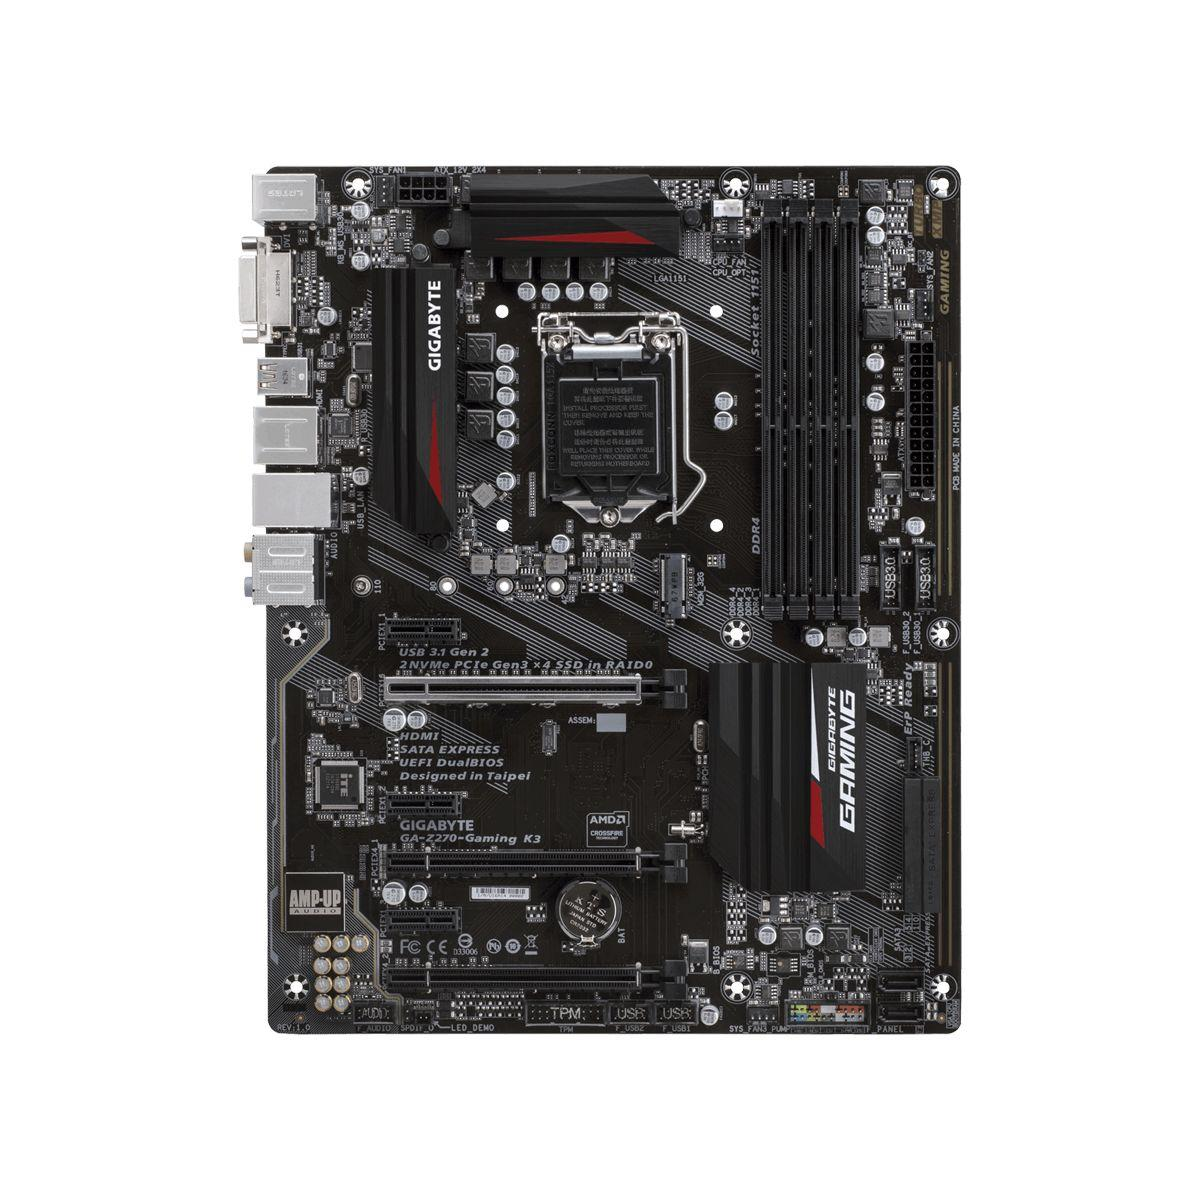 Carte m�re gigabyte at - ga-z270-gamingk3� - 7% de remise imm�diate avec le code : fete7 (photo)